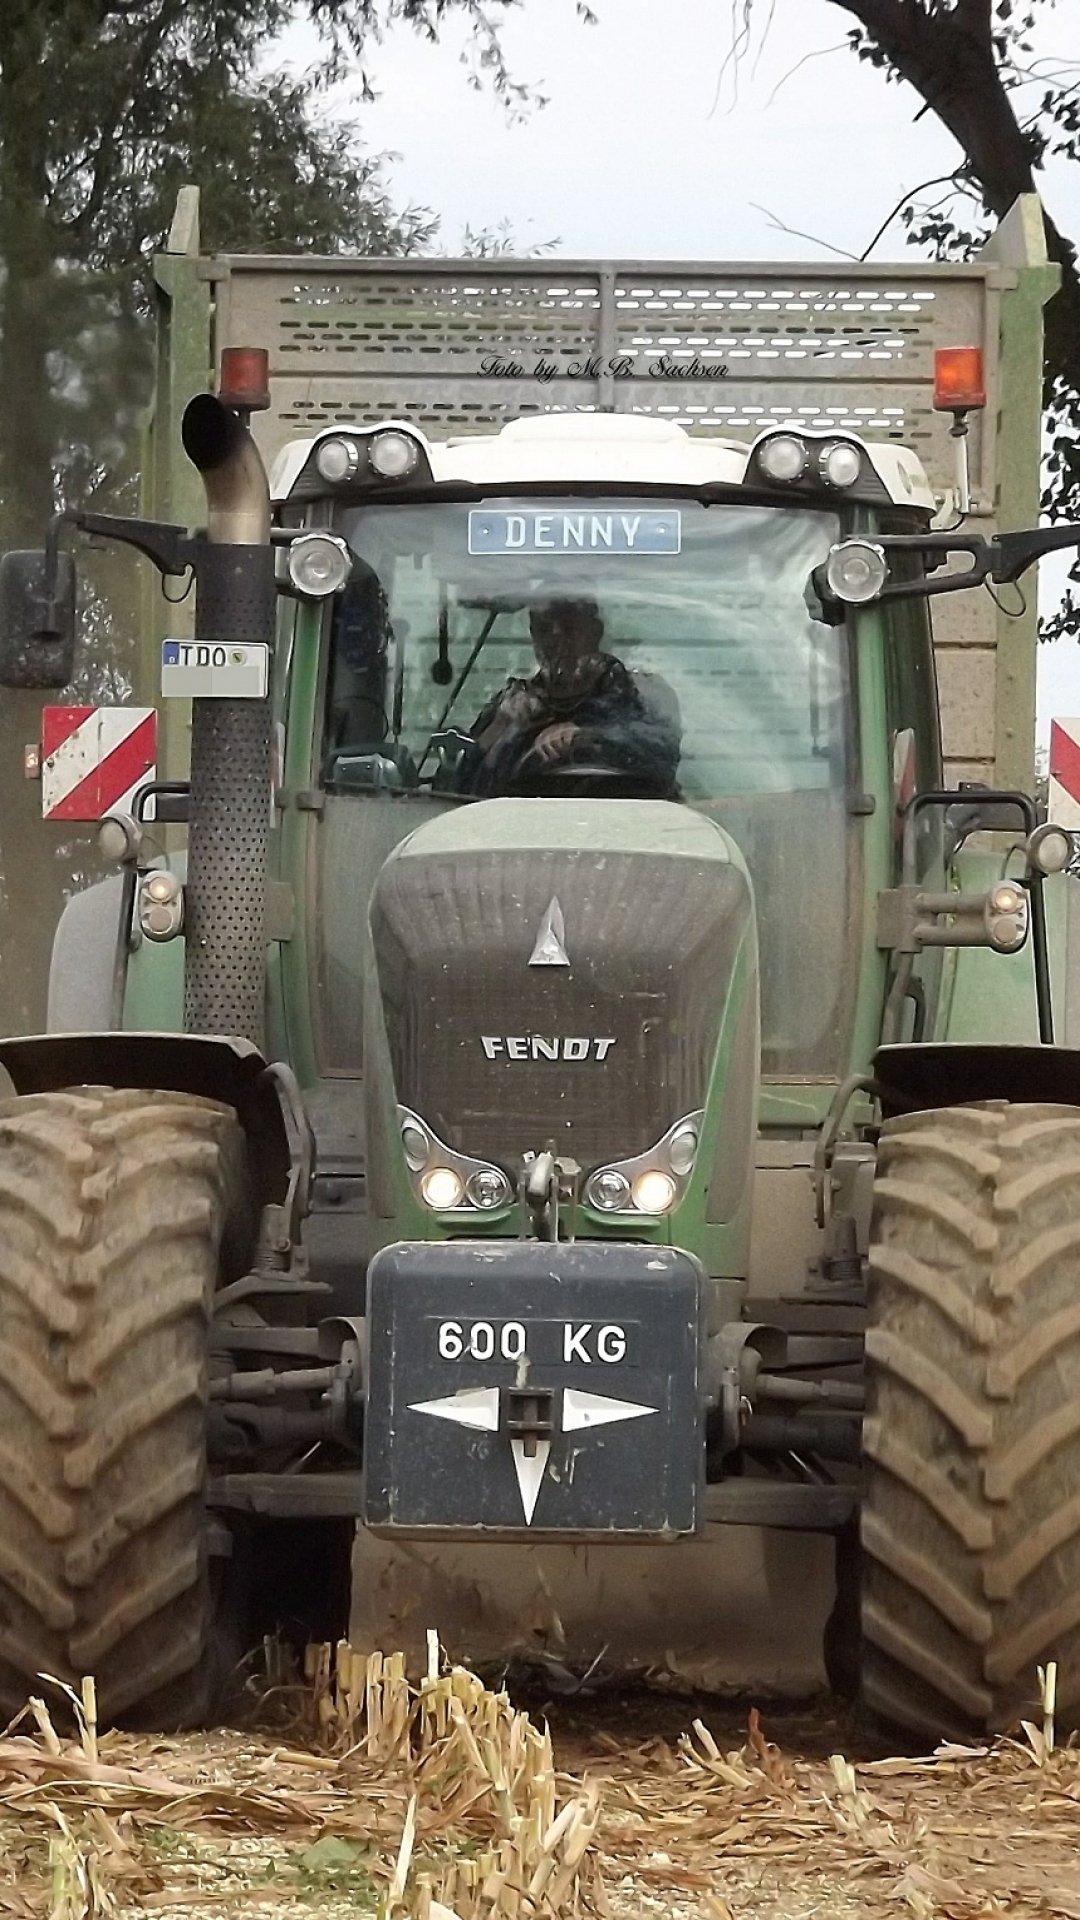 VehiclesFendt Tractor 1080x1920 Wallpaper ID 439922   Mobile Abyss 1080x1920